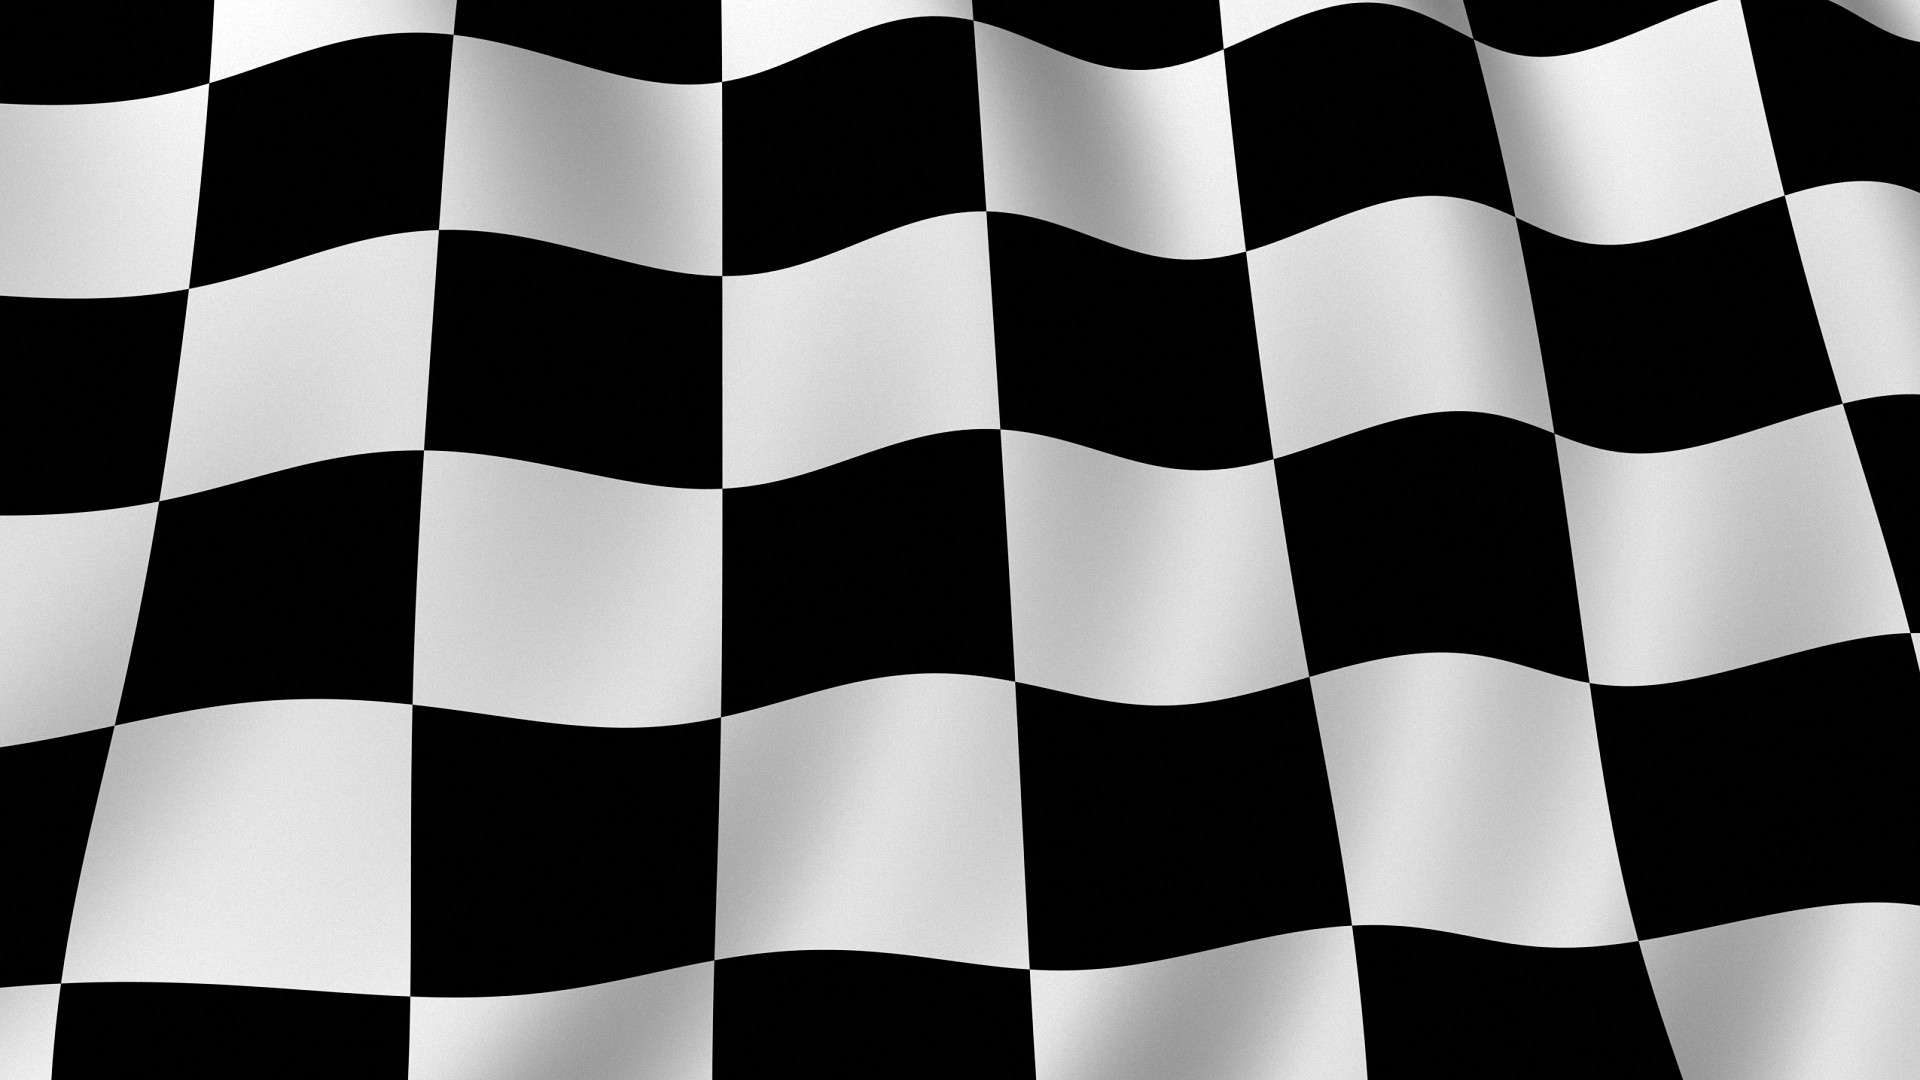 Checkered Background Wallpaper